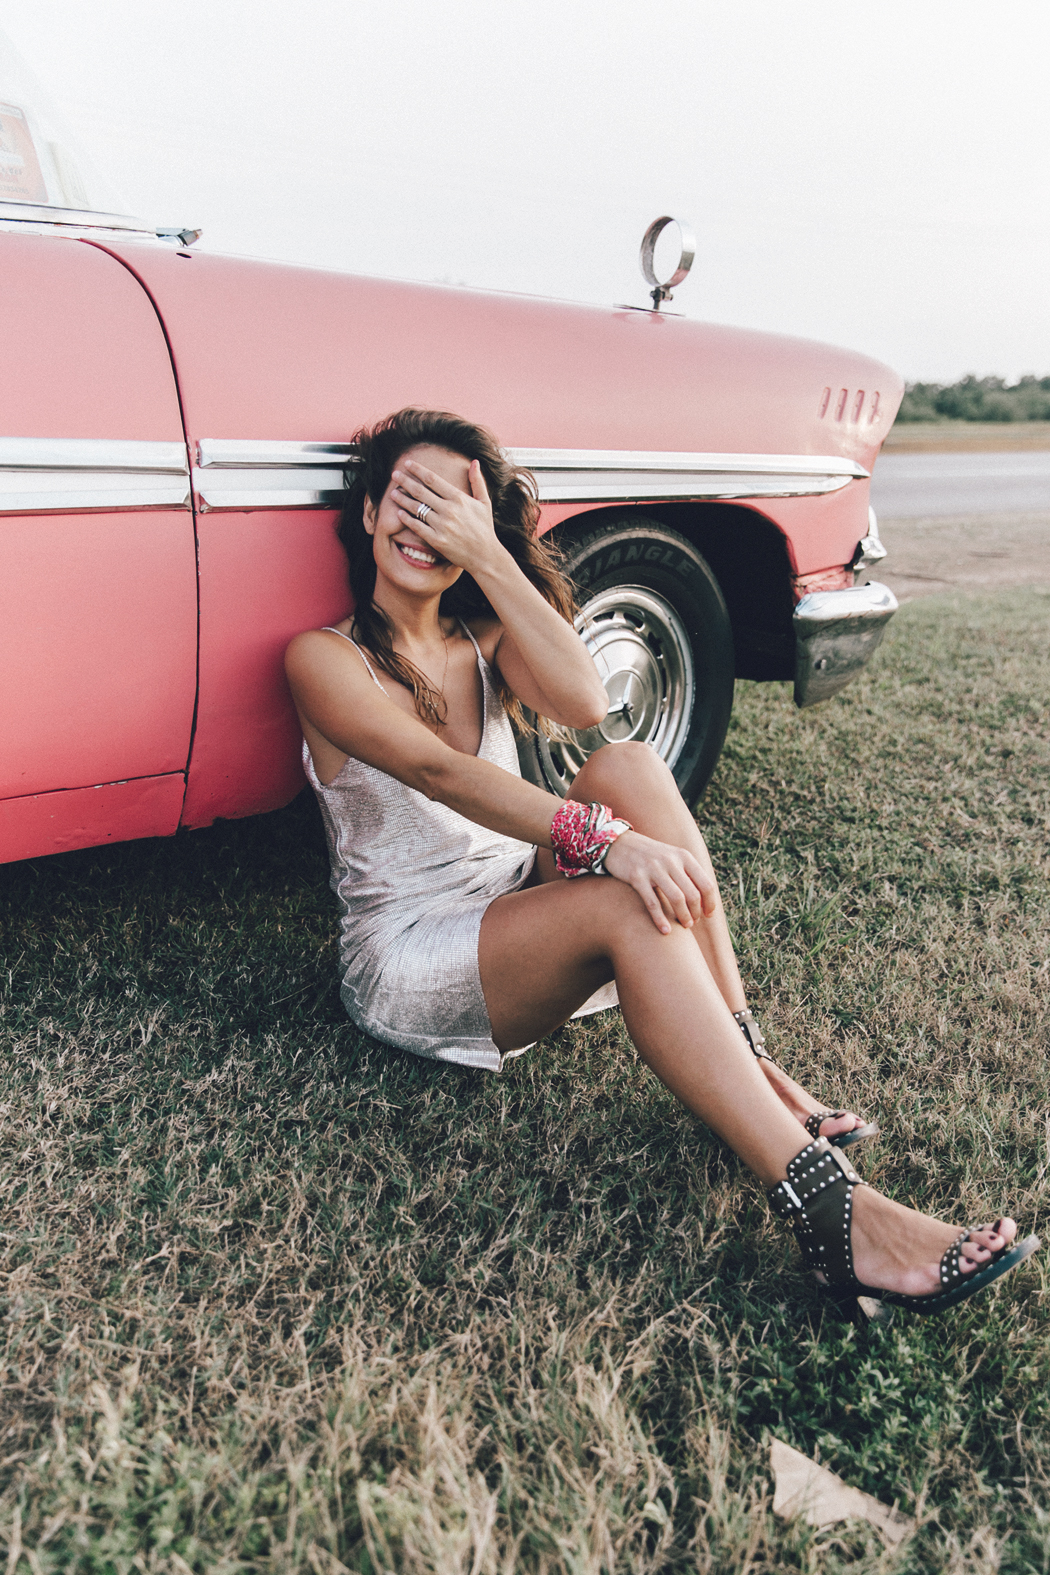 Cuba-Varadero-Vintage_Car-Silver_Dress-Floral_Scarf-Isabel_Marant_Sandals-Outfit-COllage_On_The_Road-46